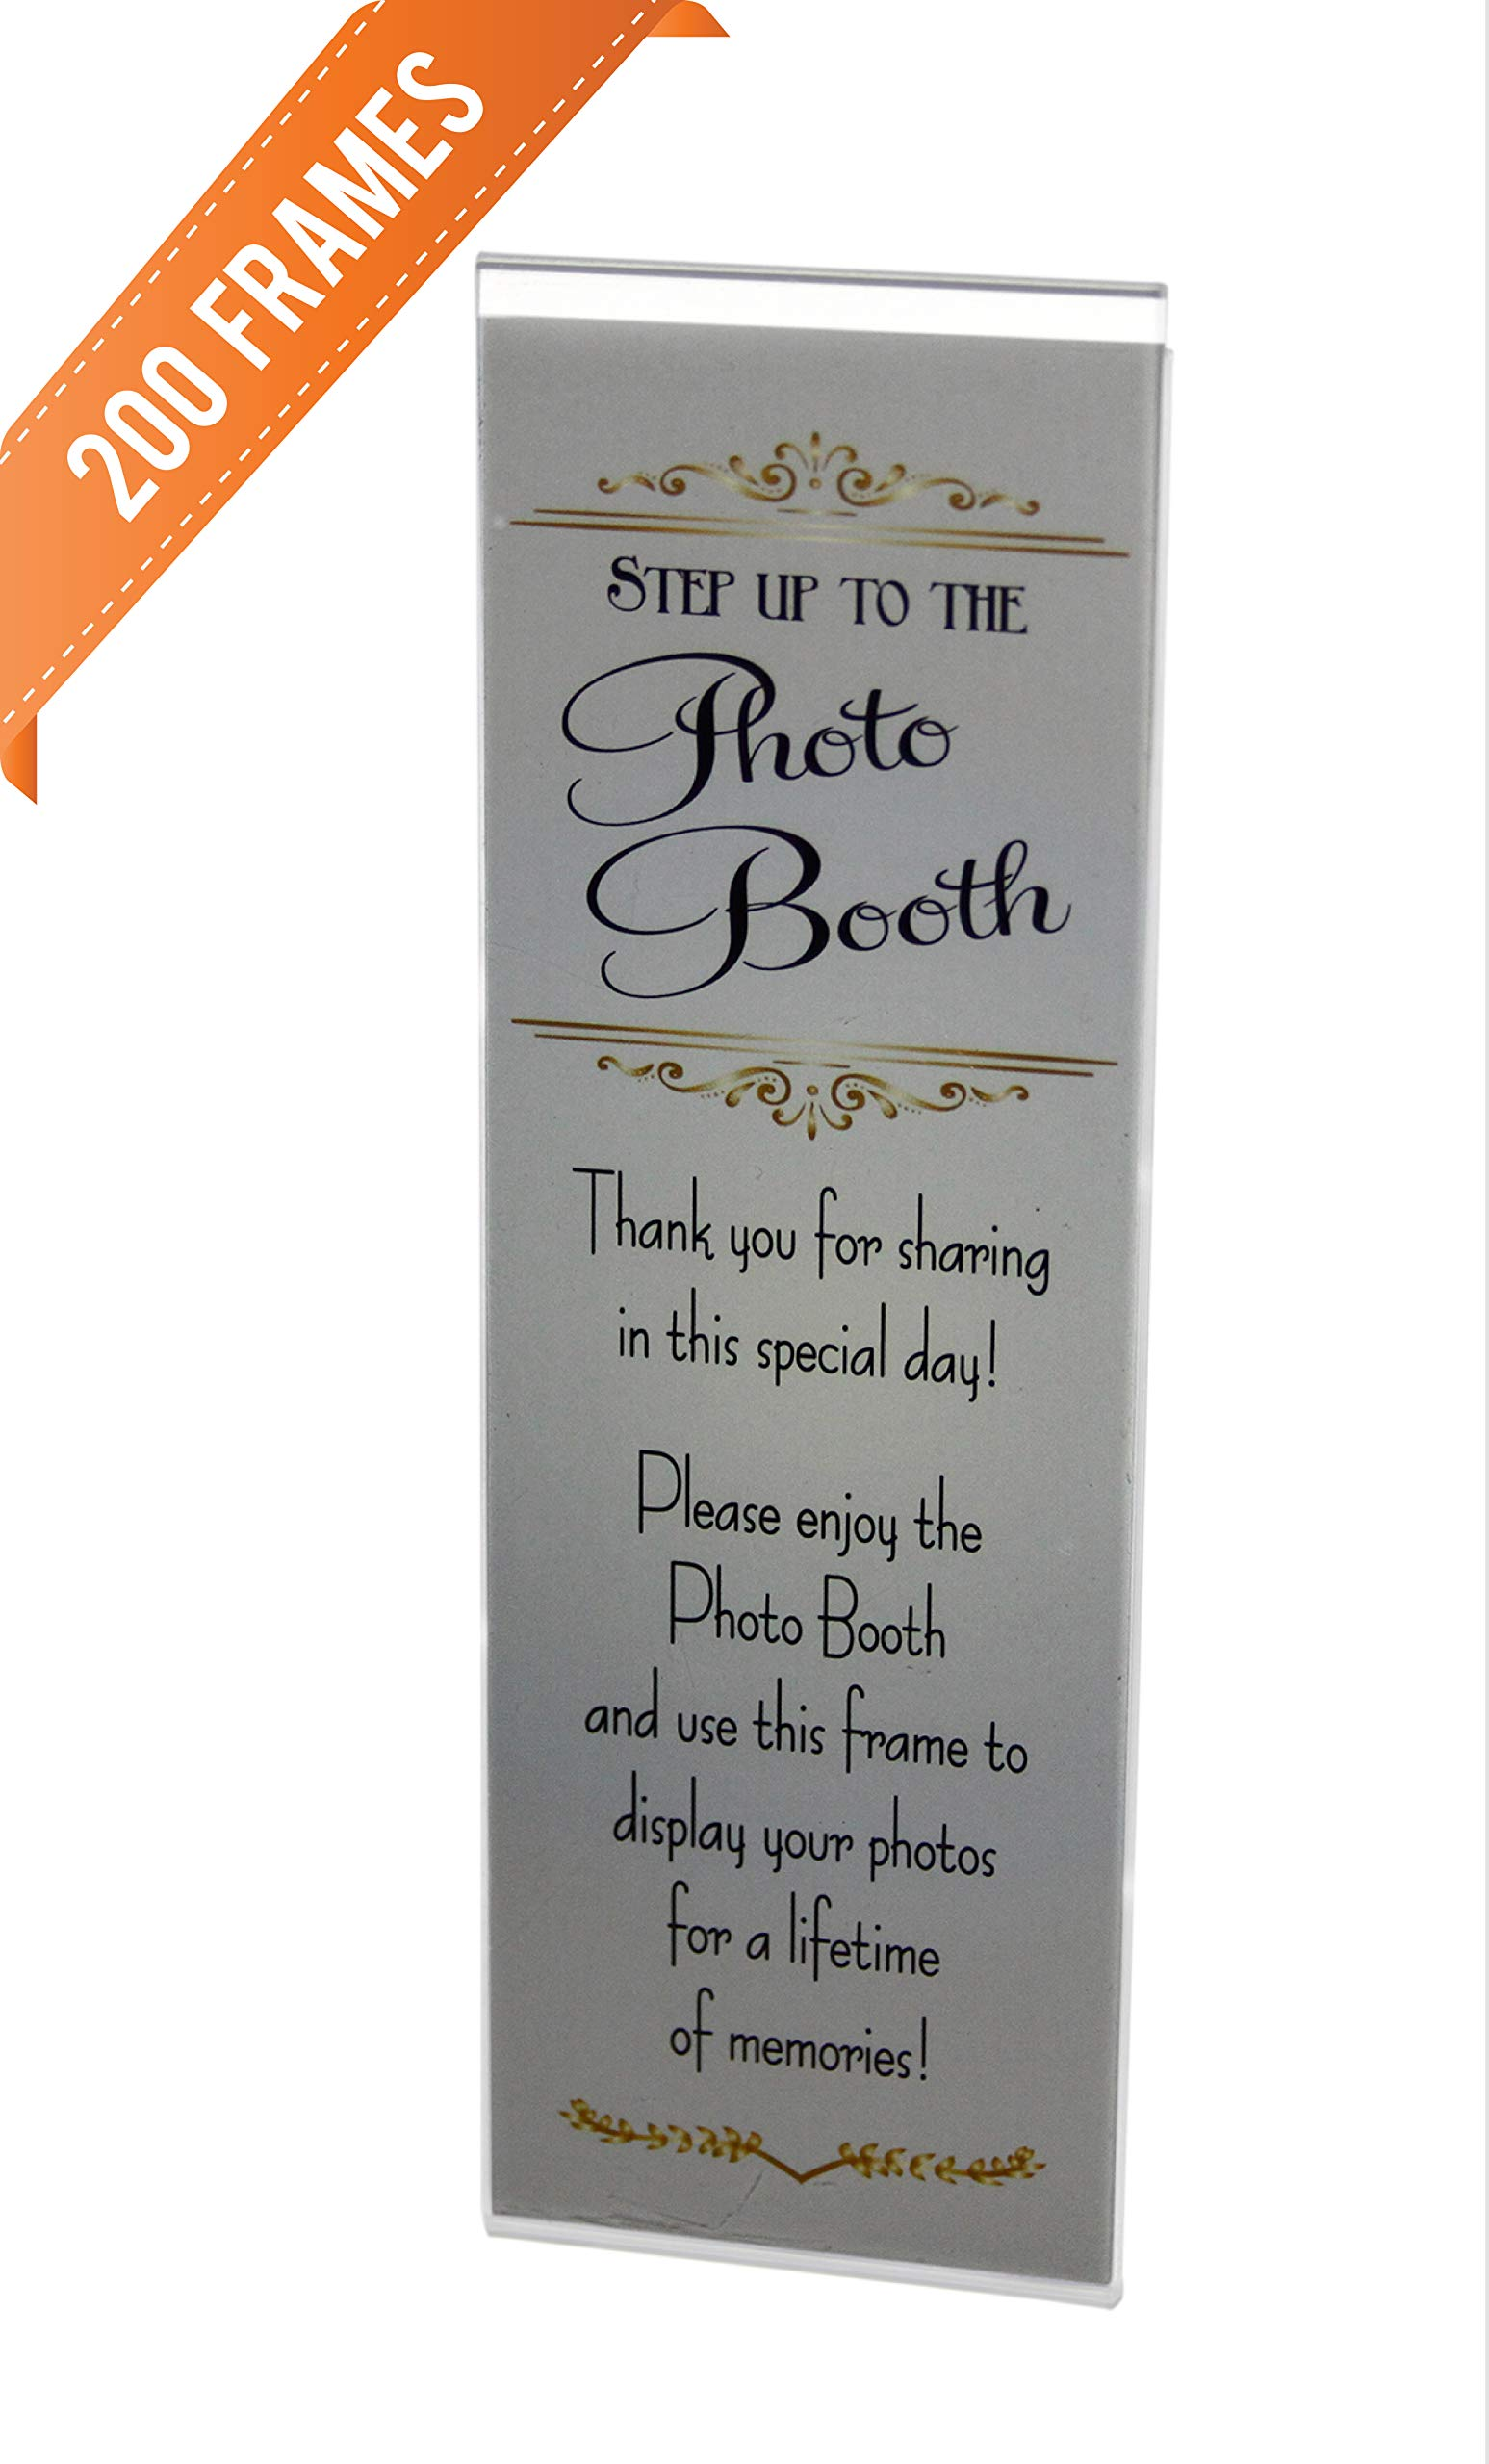 200 Acrylic Magnetic Photo Booth Frames for 2'' X 6'' Photo Strips by Photo Booth Nook